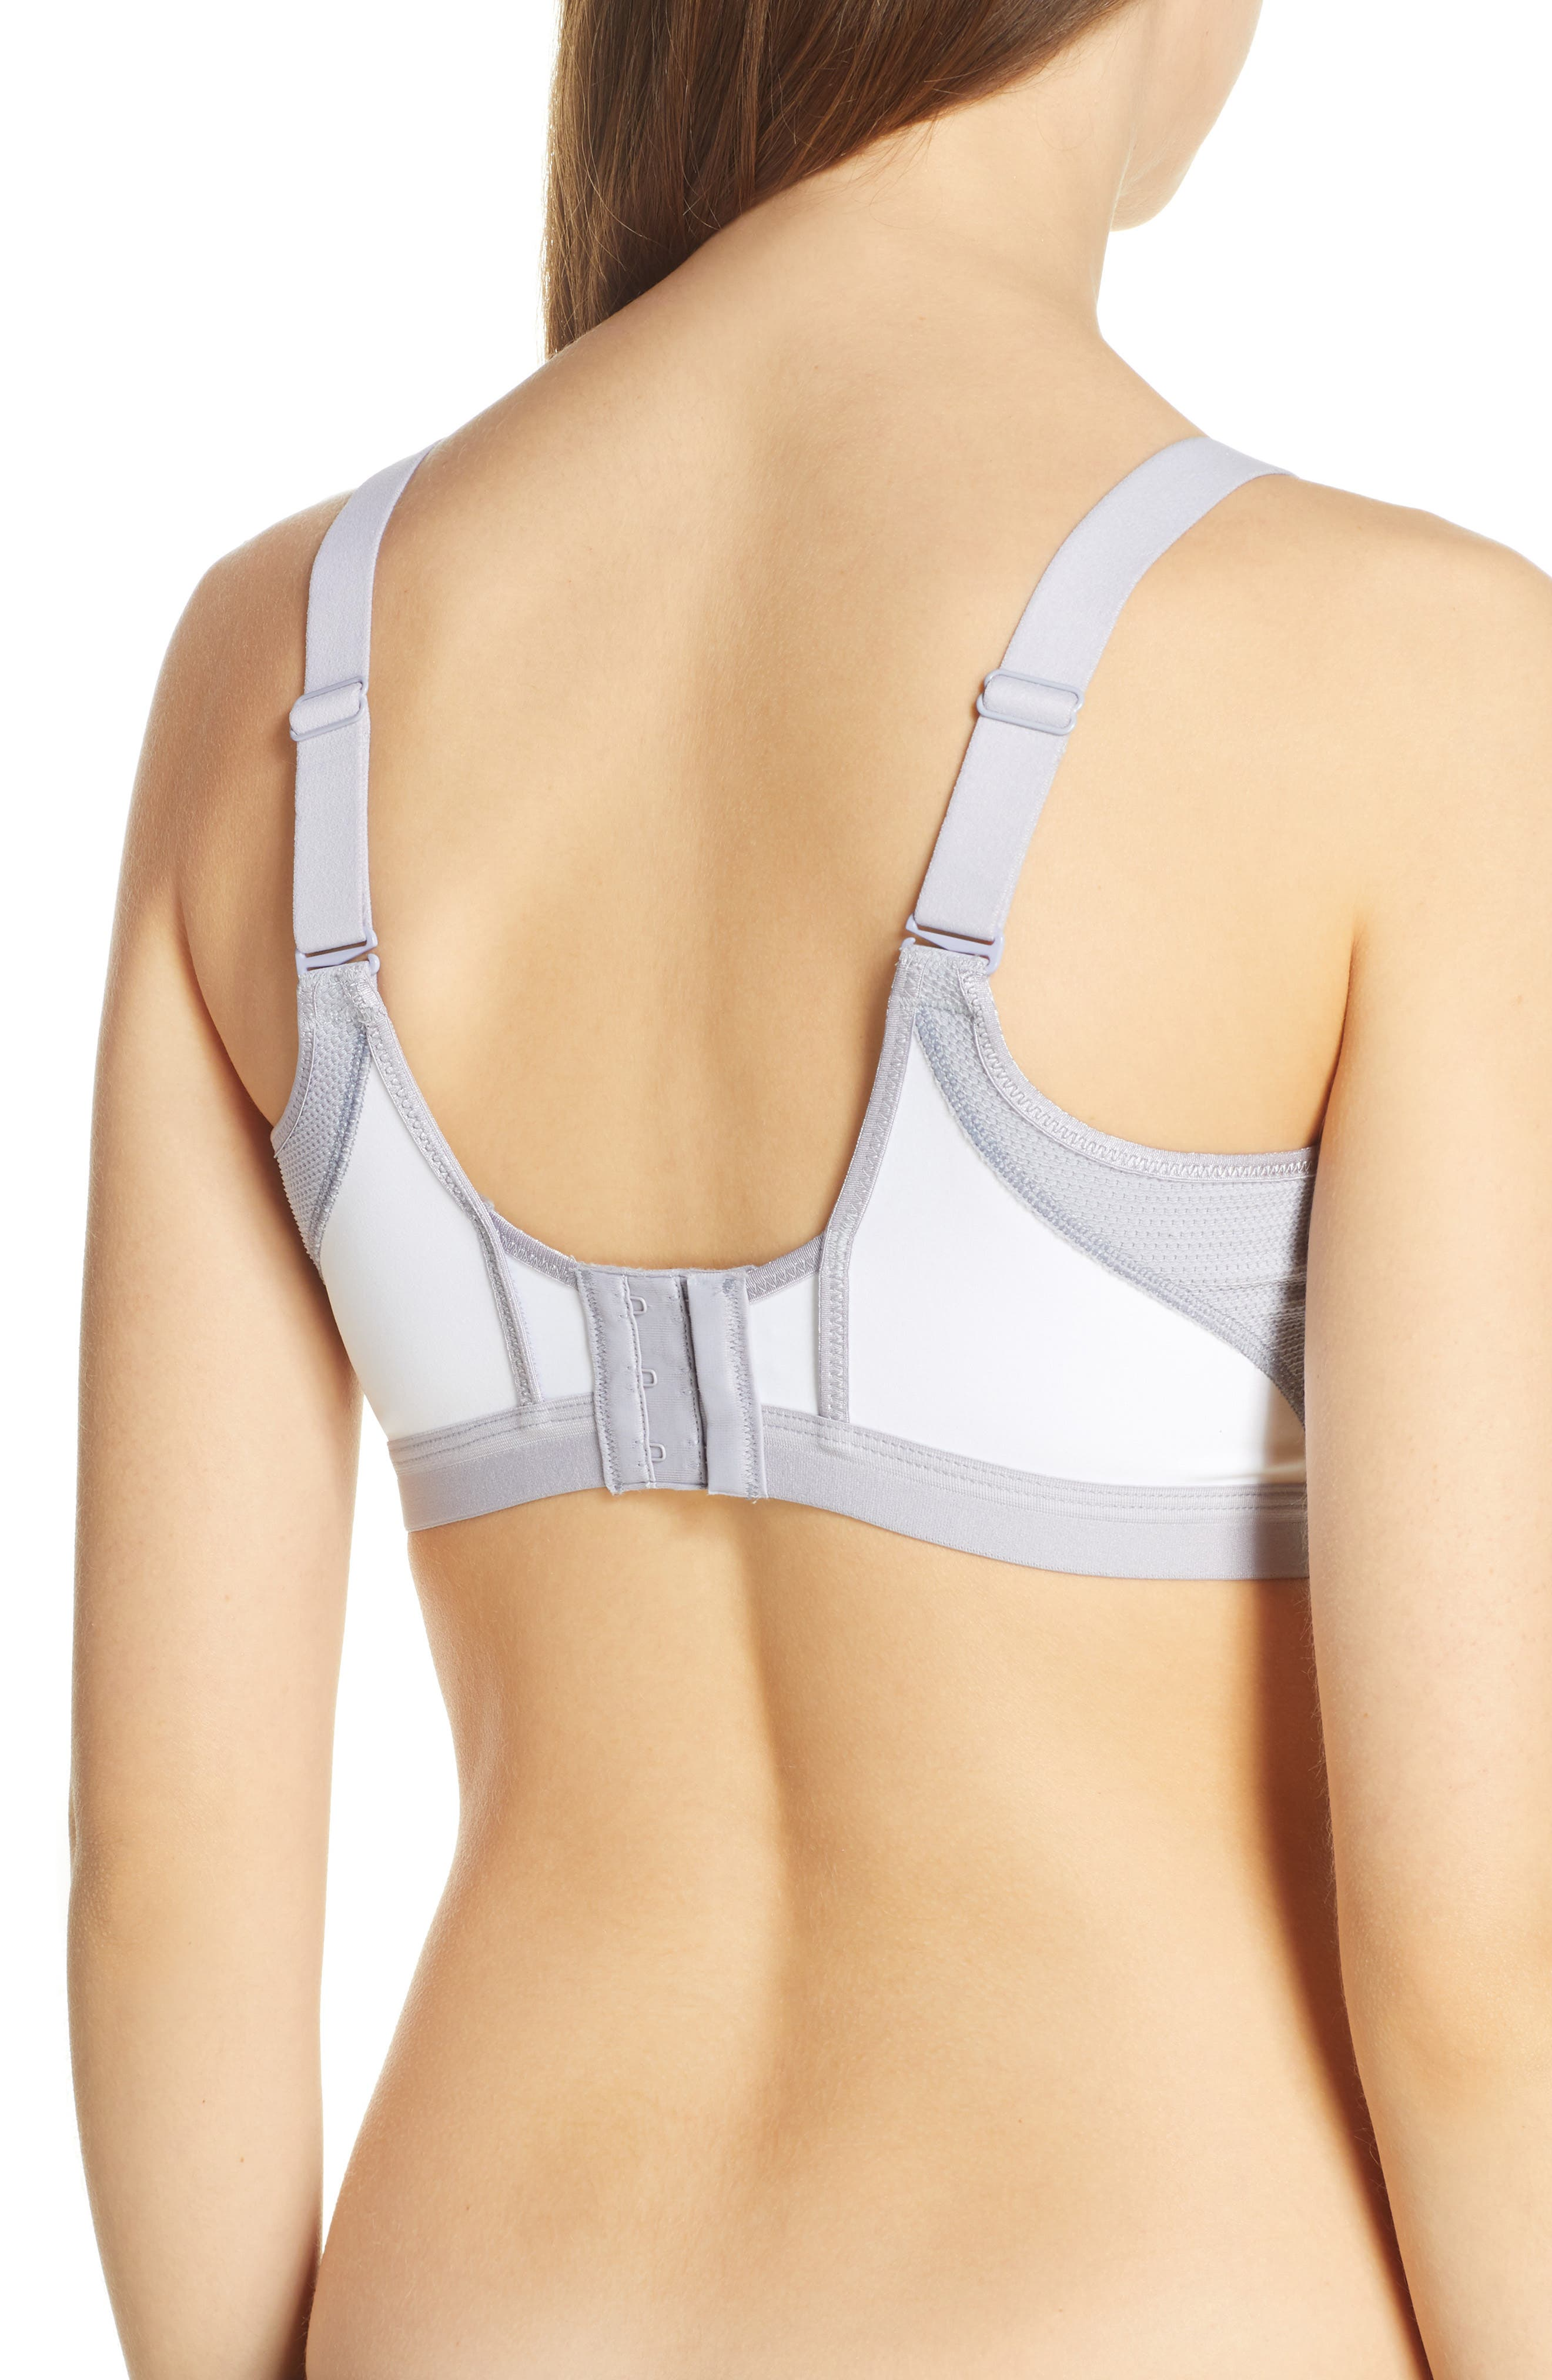 WACOAL,                             High Impact Underwire Sports Bra,                             Alternate thumbnail 2, color,                             WHITE/ LILAC GRAY